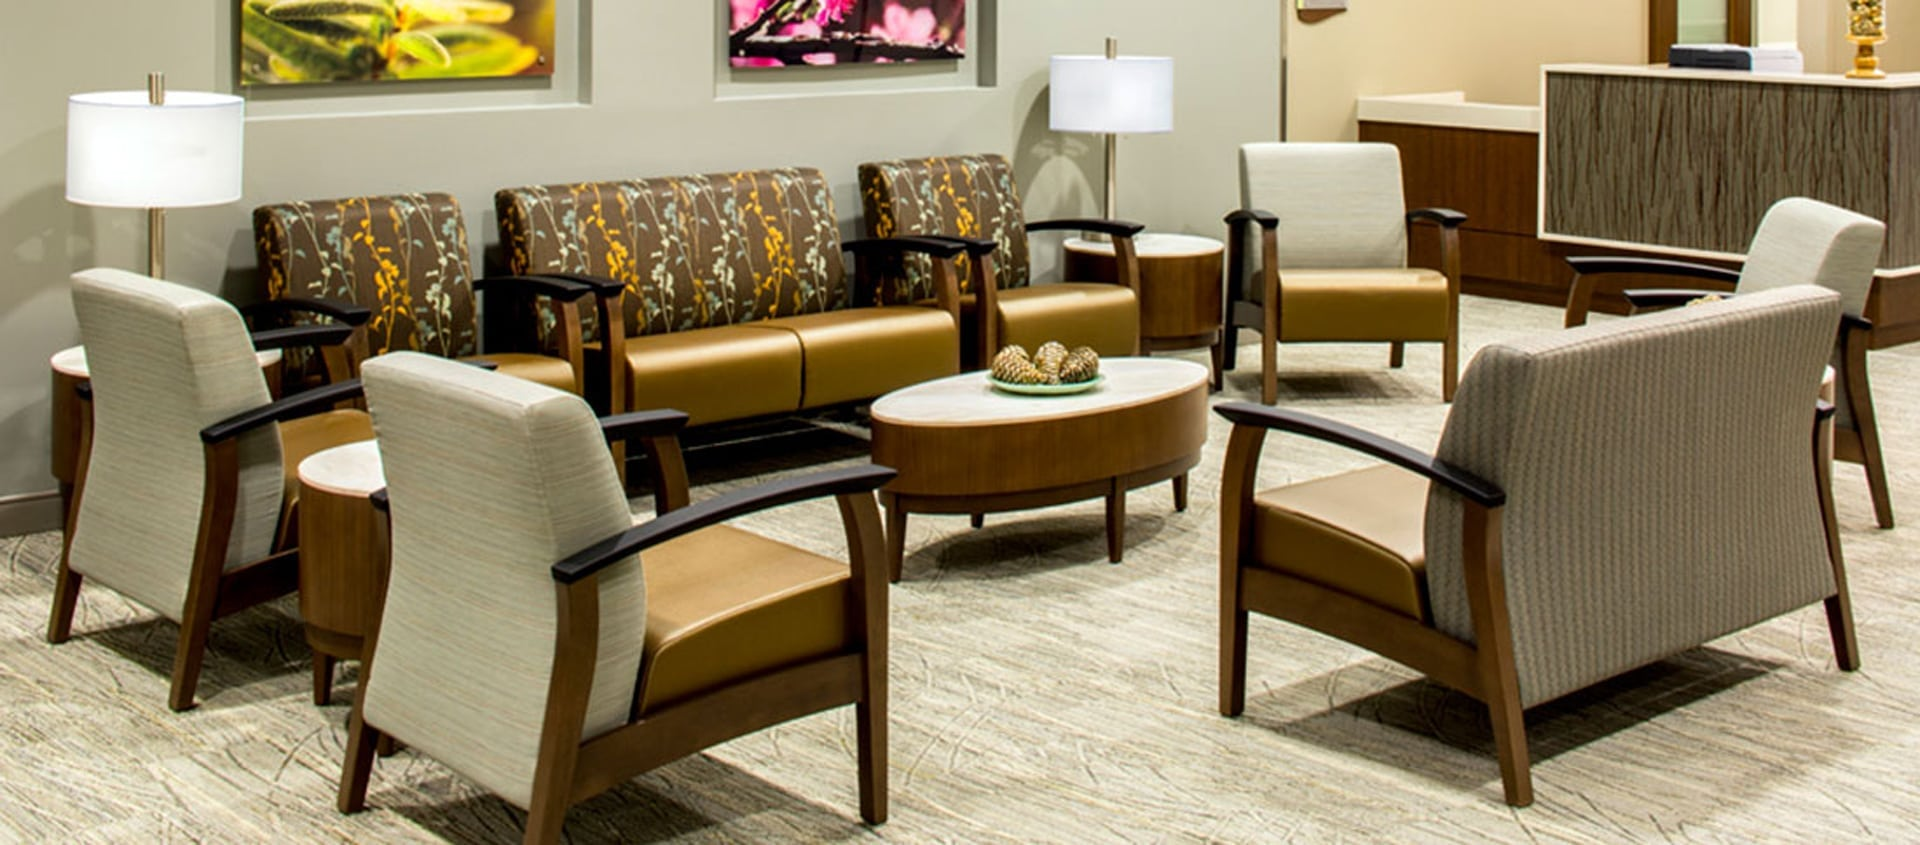 The Global Furniture Group offers a variety of fabrics and patterns to create your look and feel